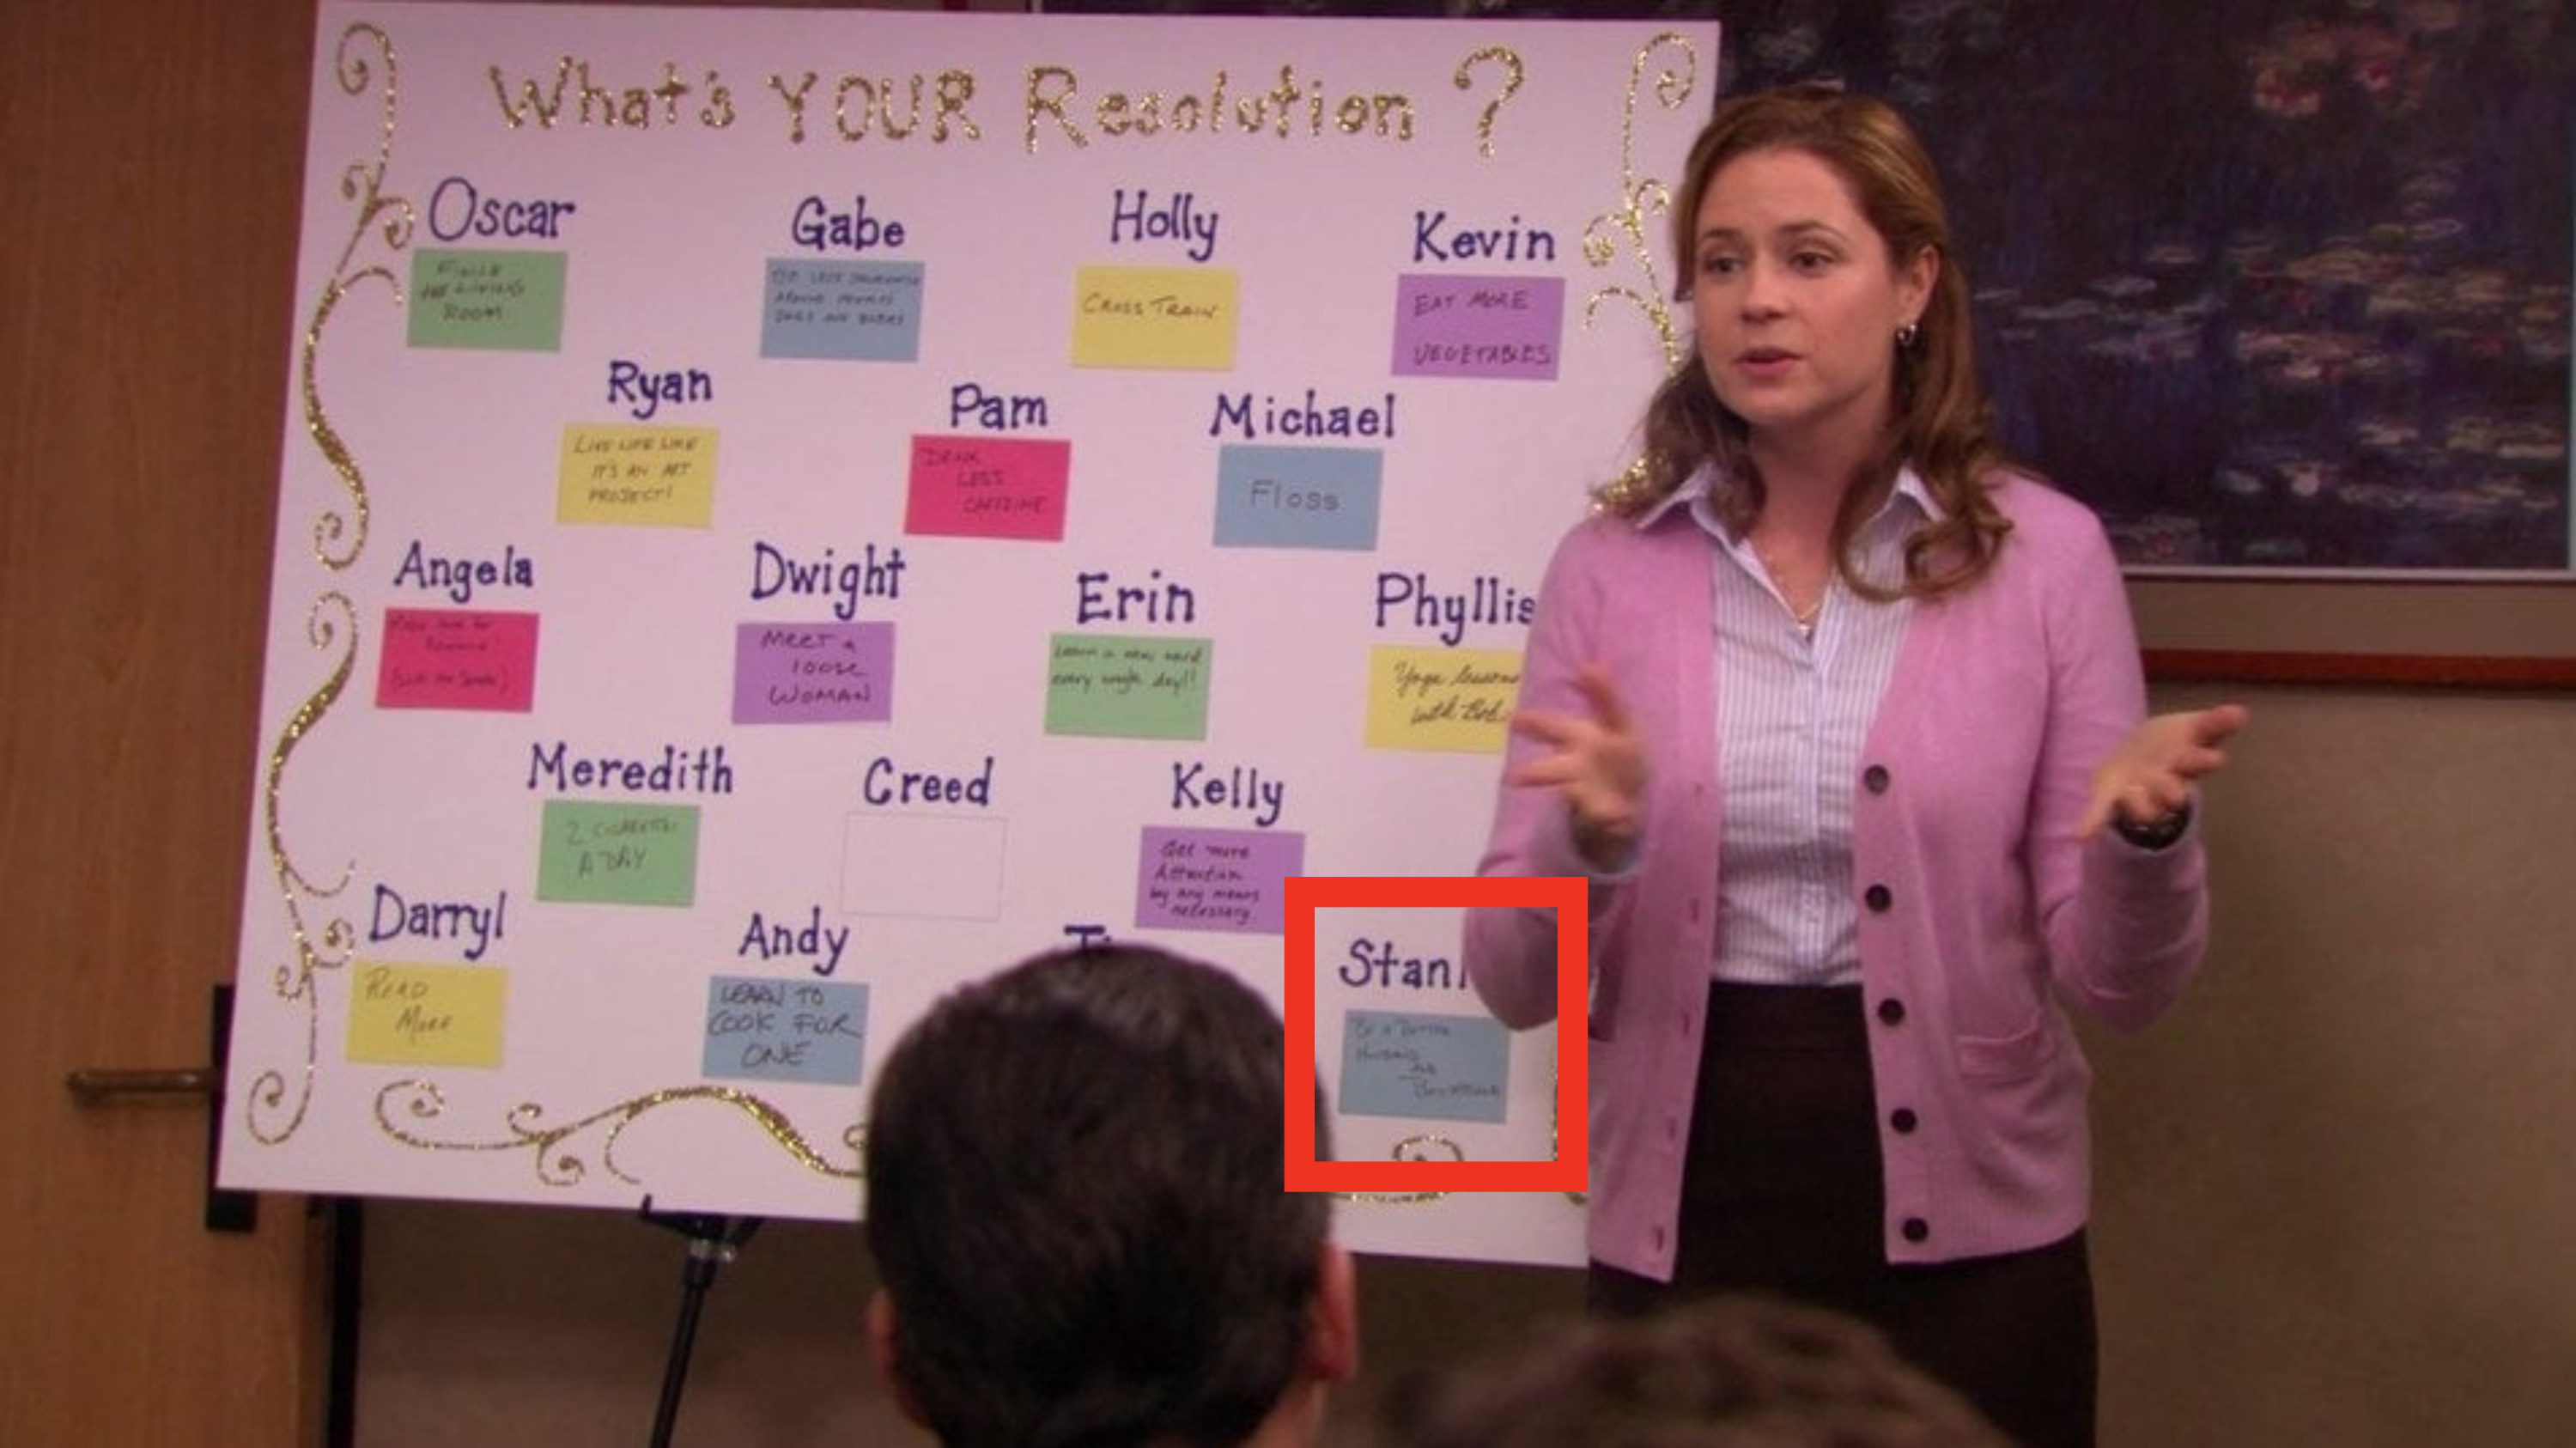 Pam leading a meeting about new years resolutions